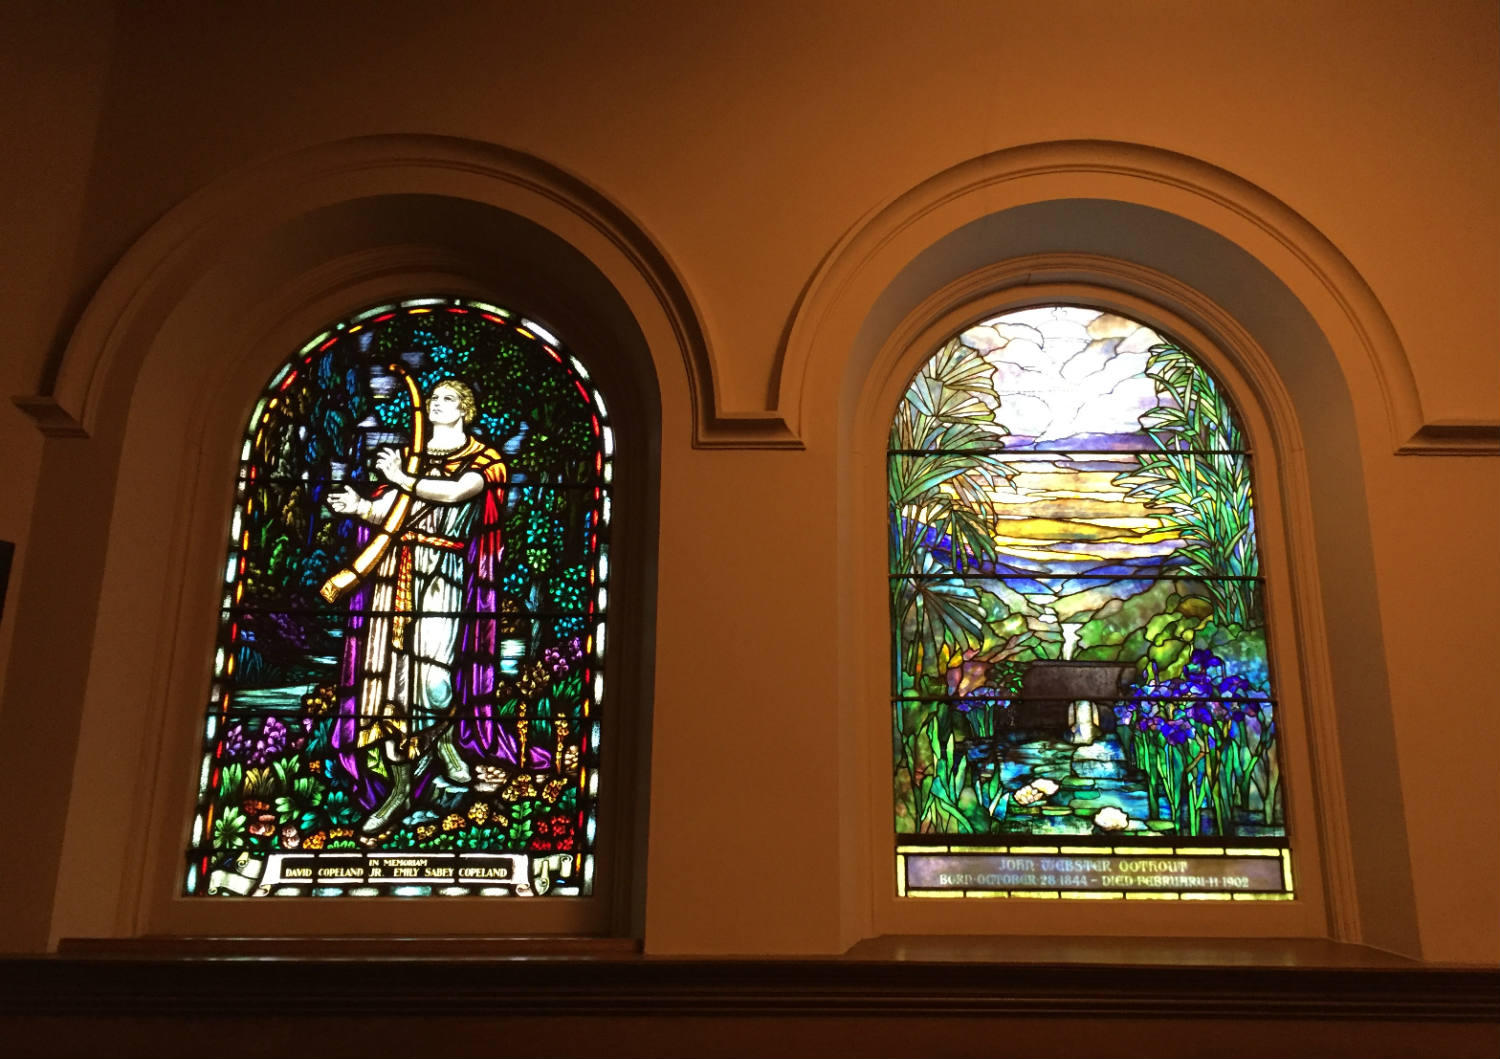 Stained Glass Windows at Third Presbyterian Church on East Ave in Rochester, NY